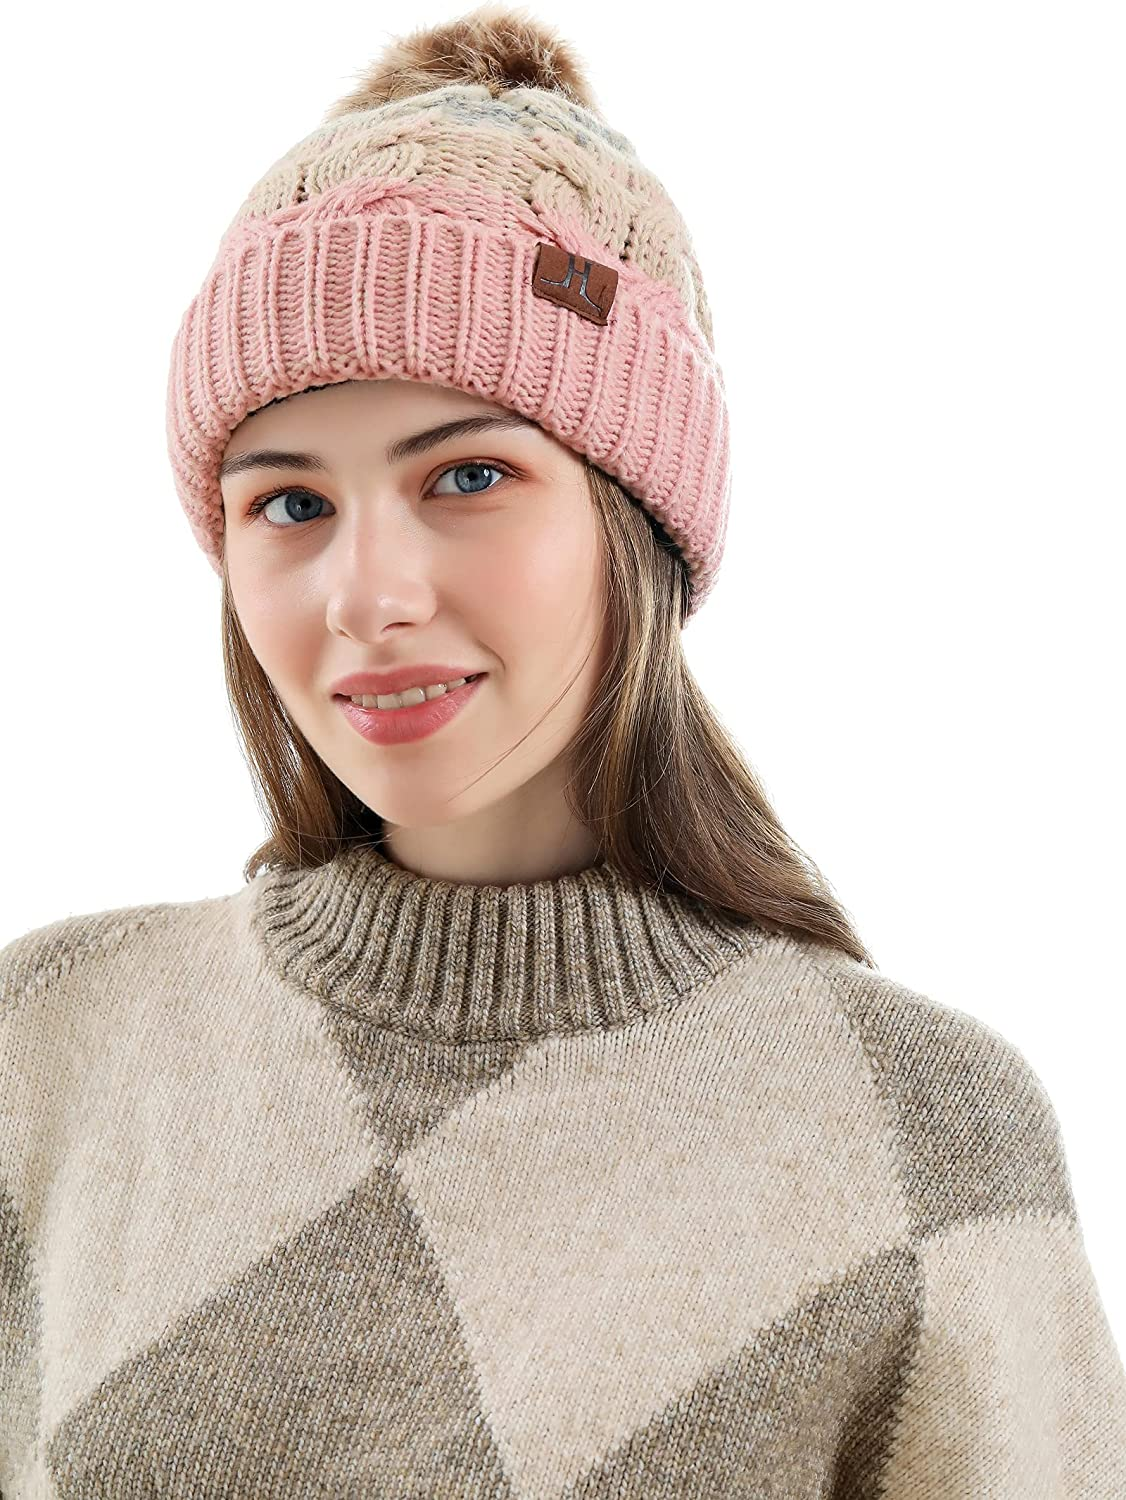 JTJFIT Winter Knitted Beanie Hat Cozy Warm Fleece Lined Ribbed Pom Cap for Women